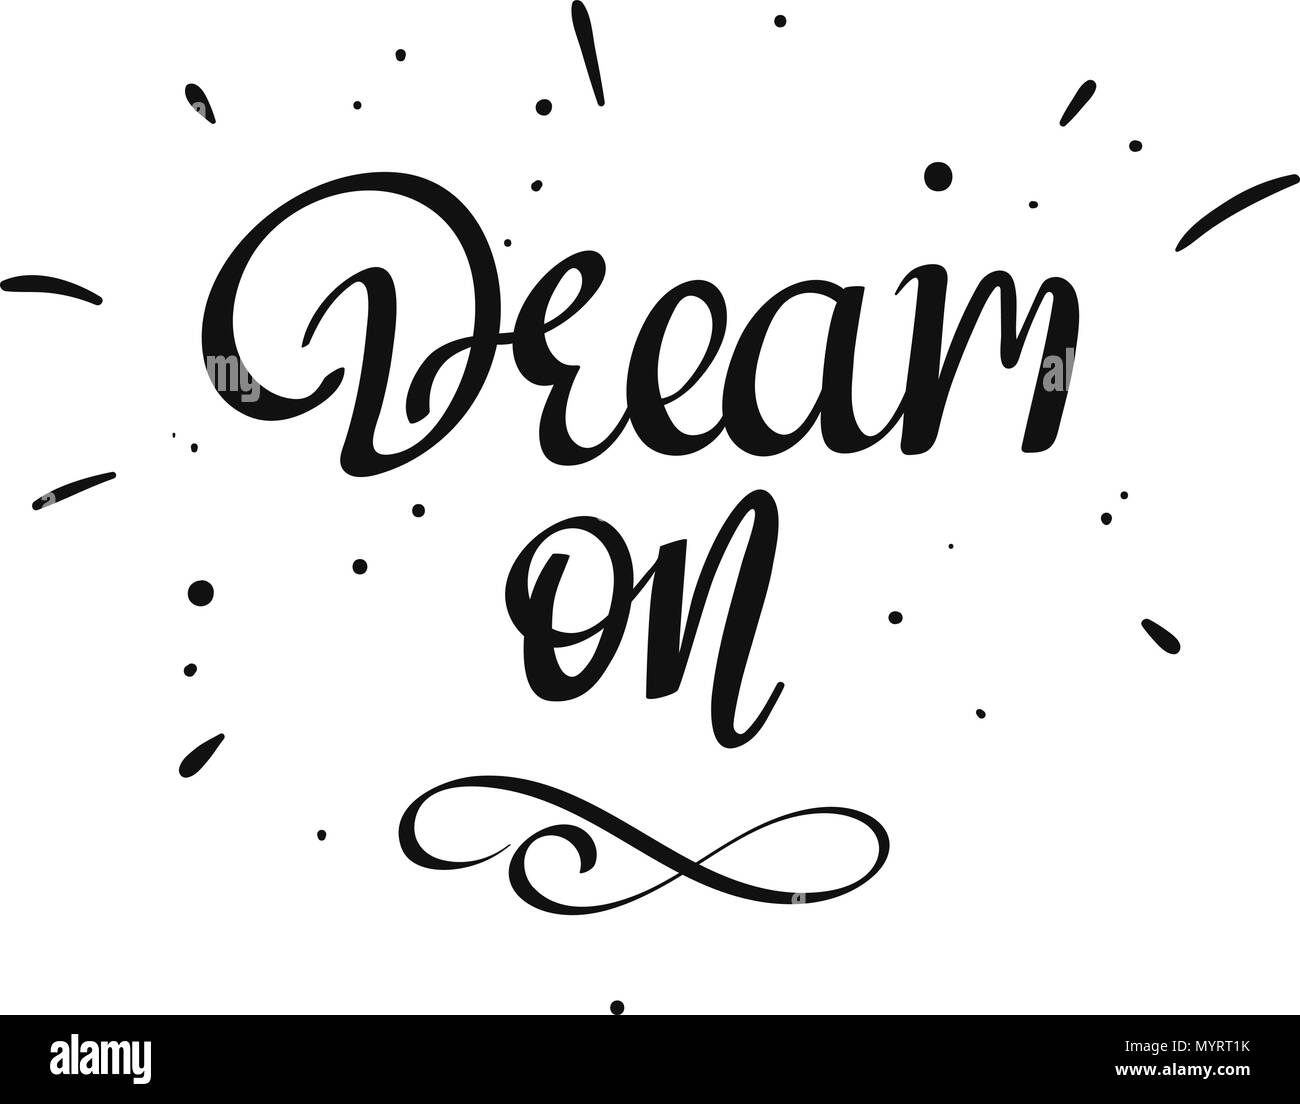 Expression Of Words Written In Ink: Dream On Lettering Calligraphy. Hand Written Decorative